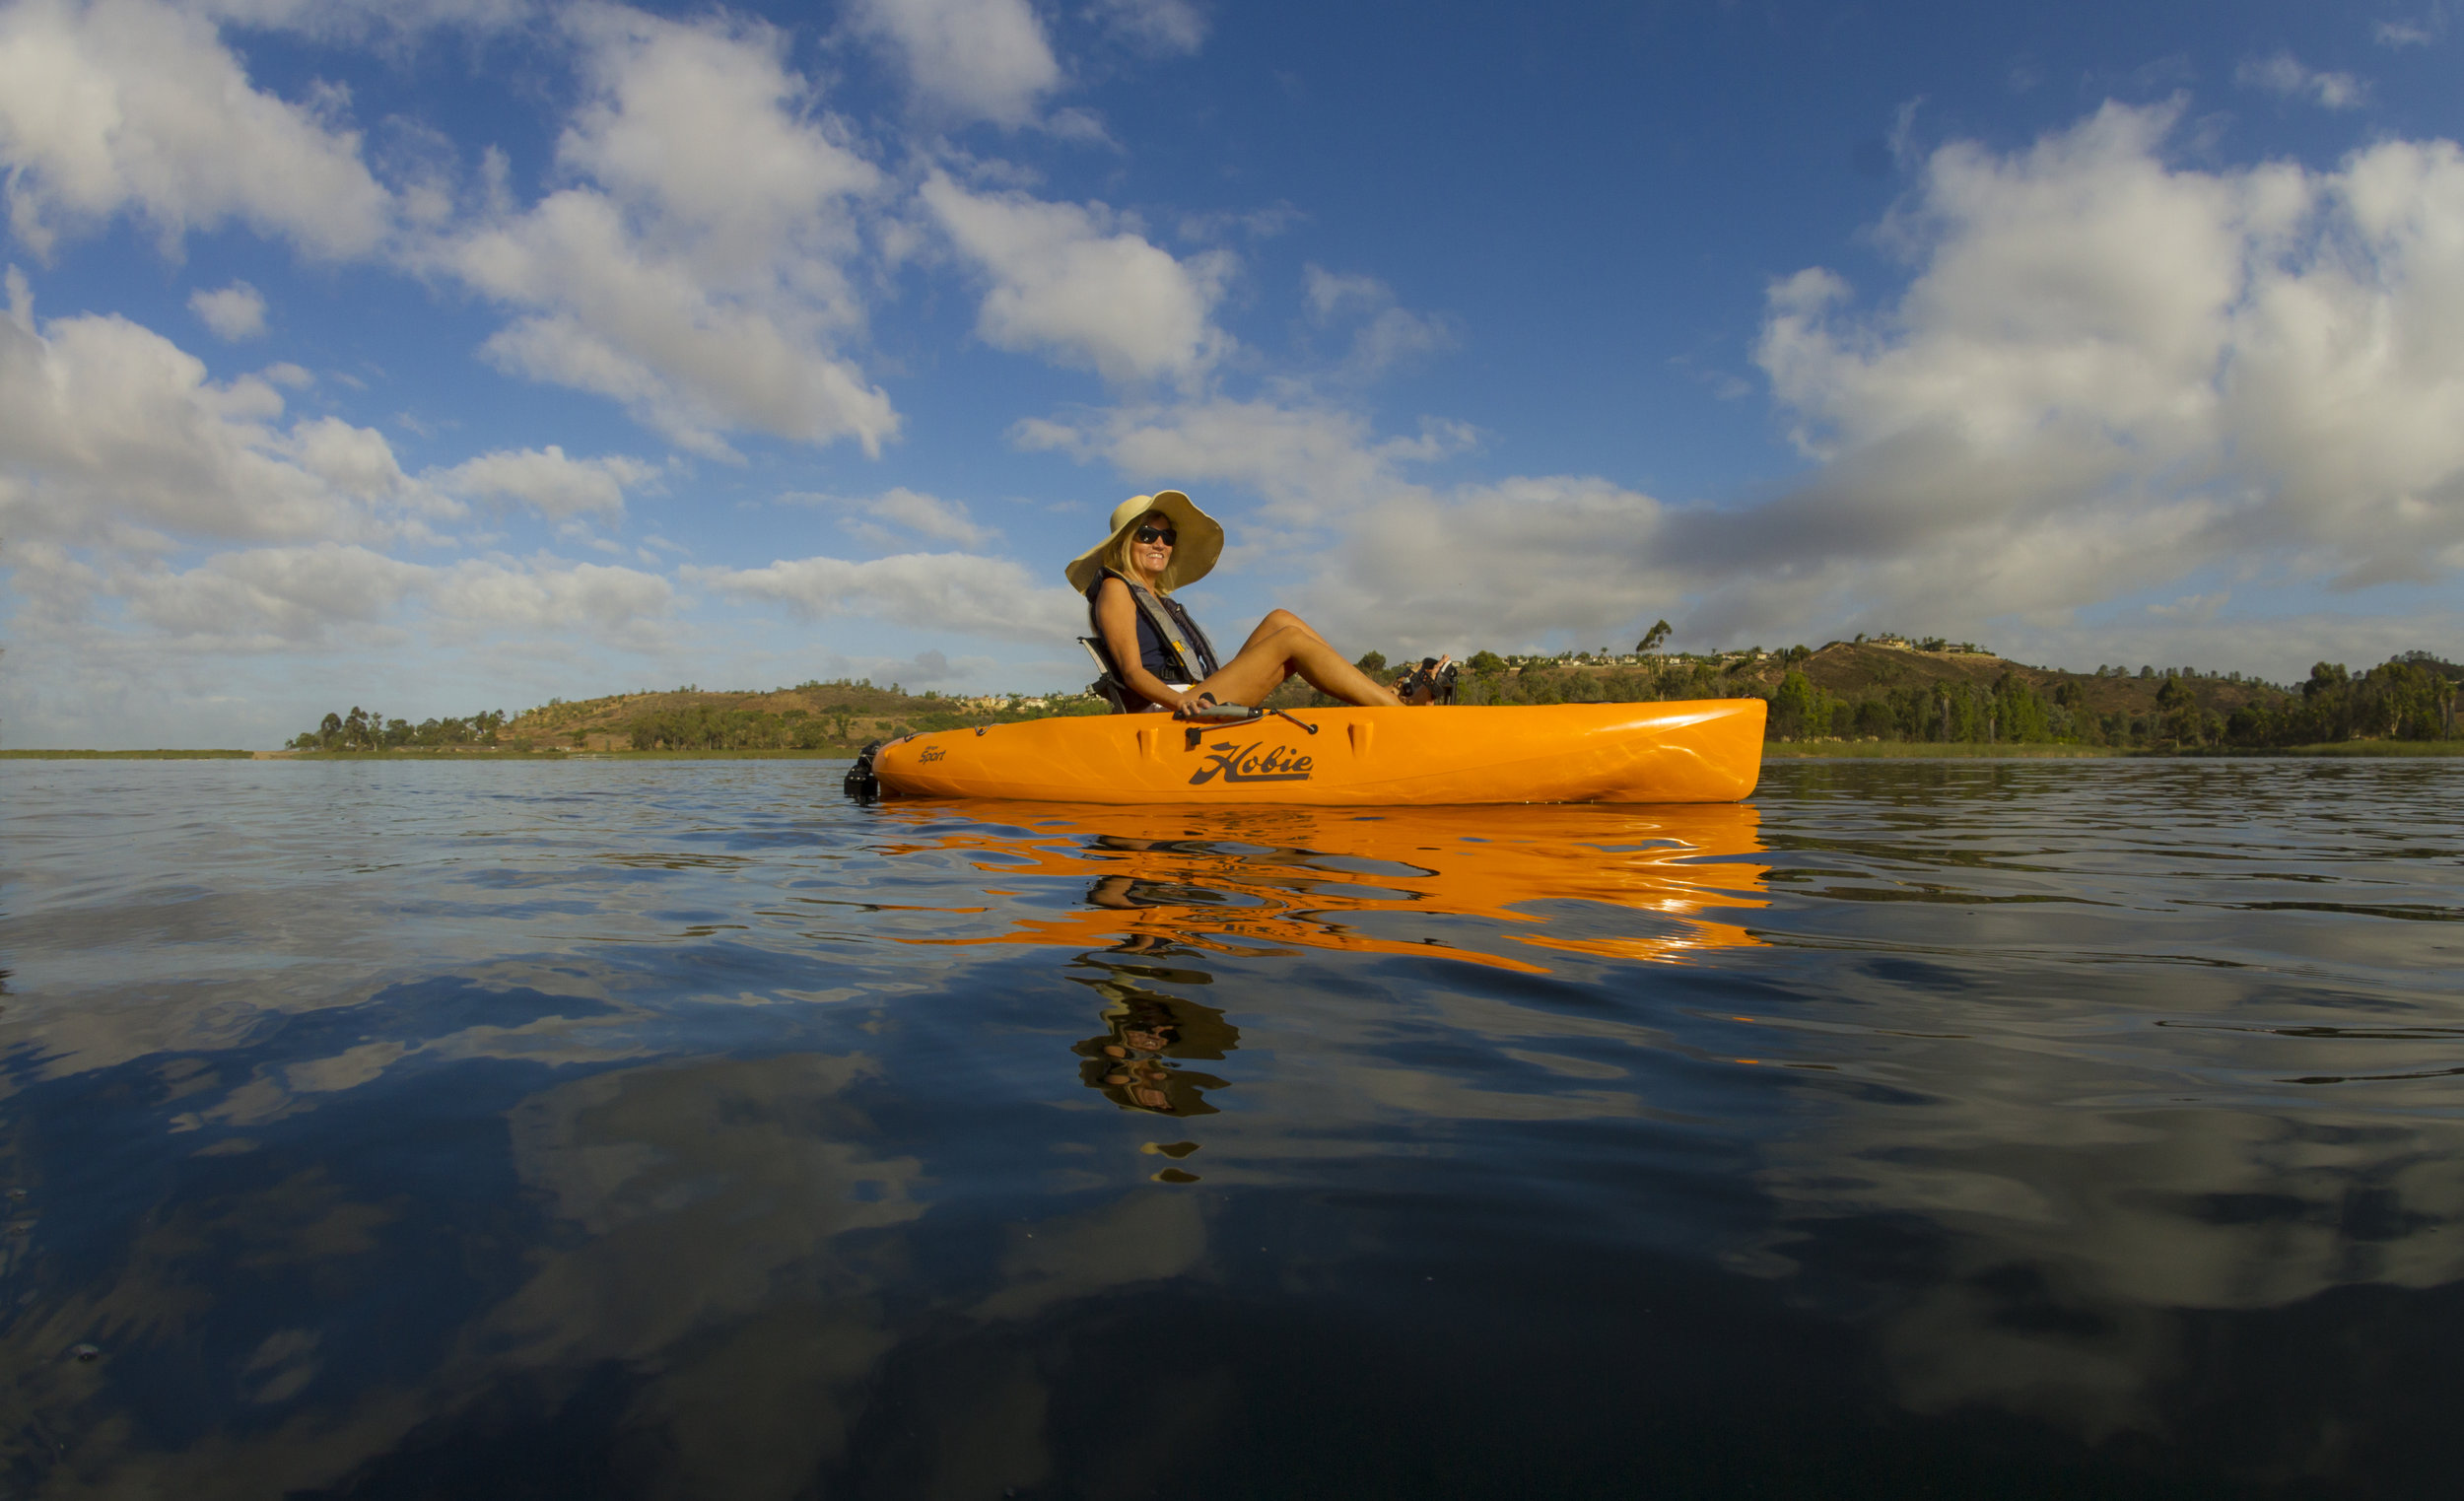 Sport_action_lake_papaya_wideangle.jpg